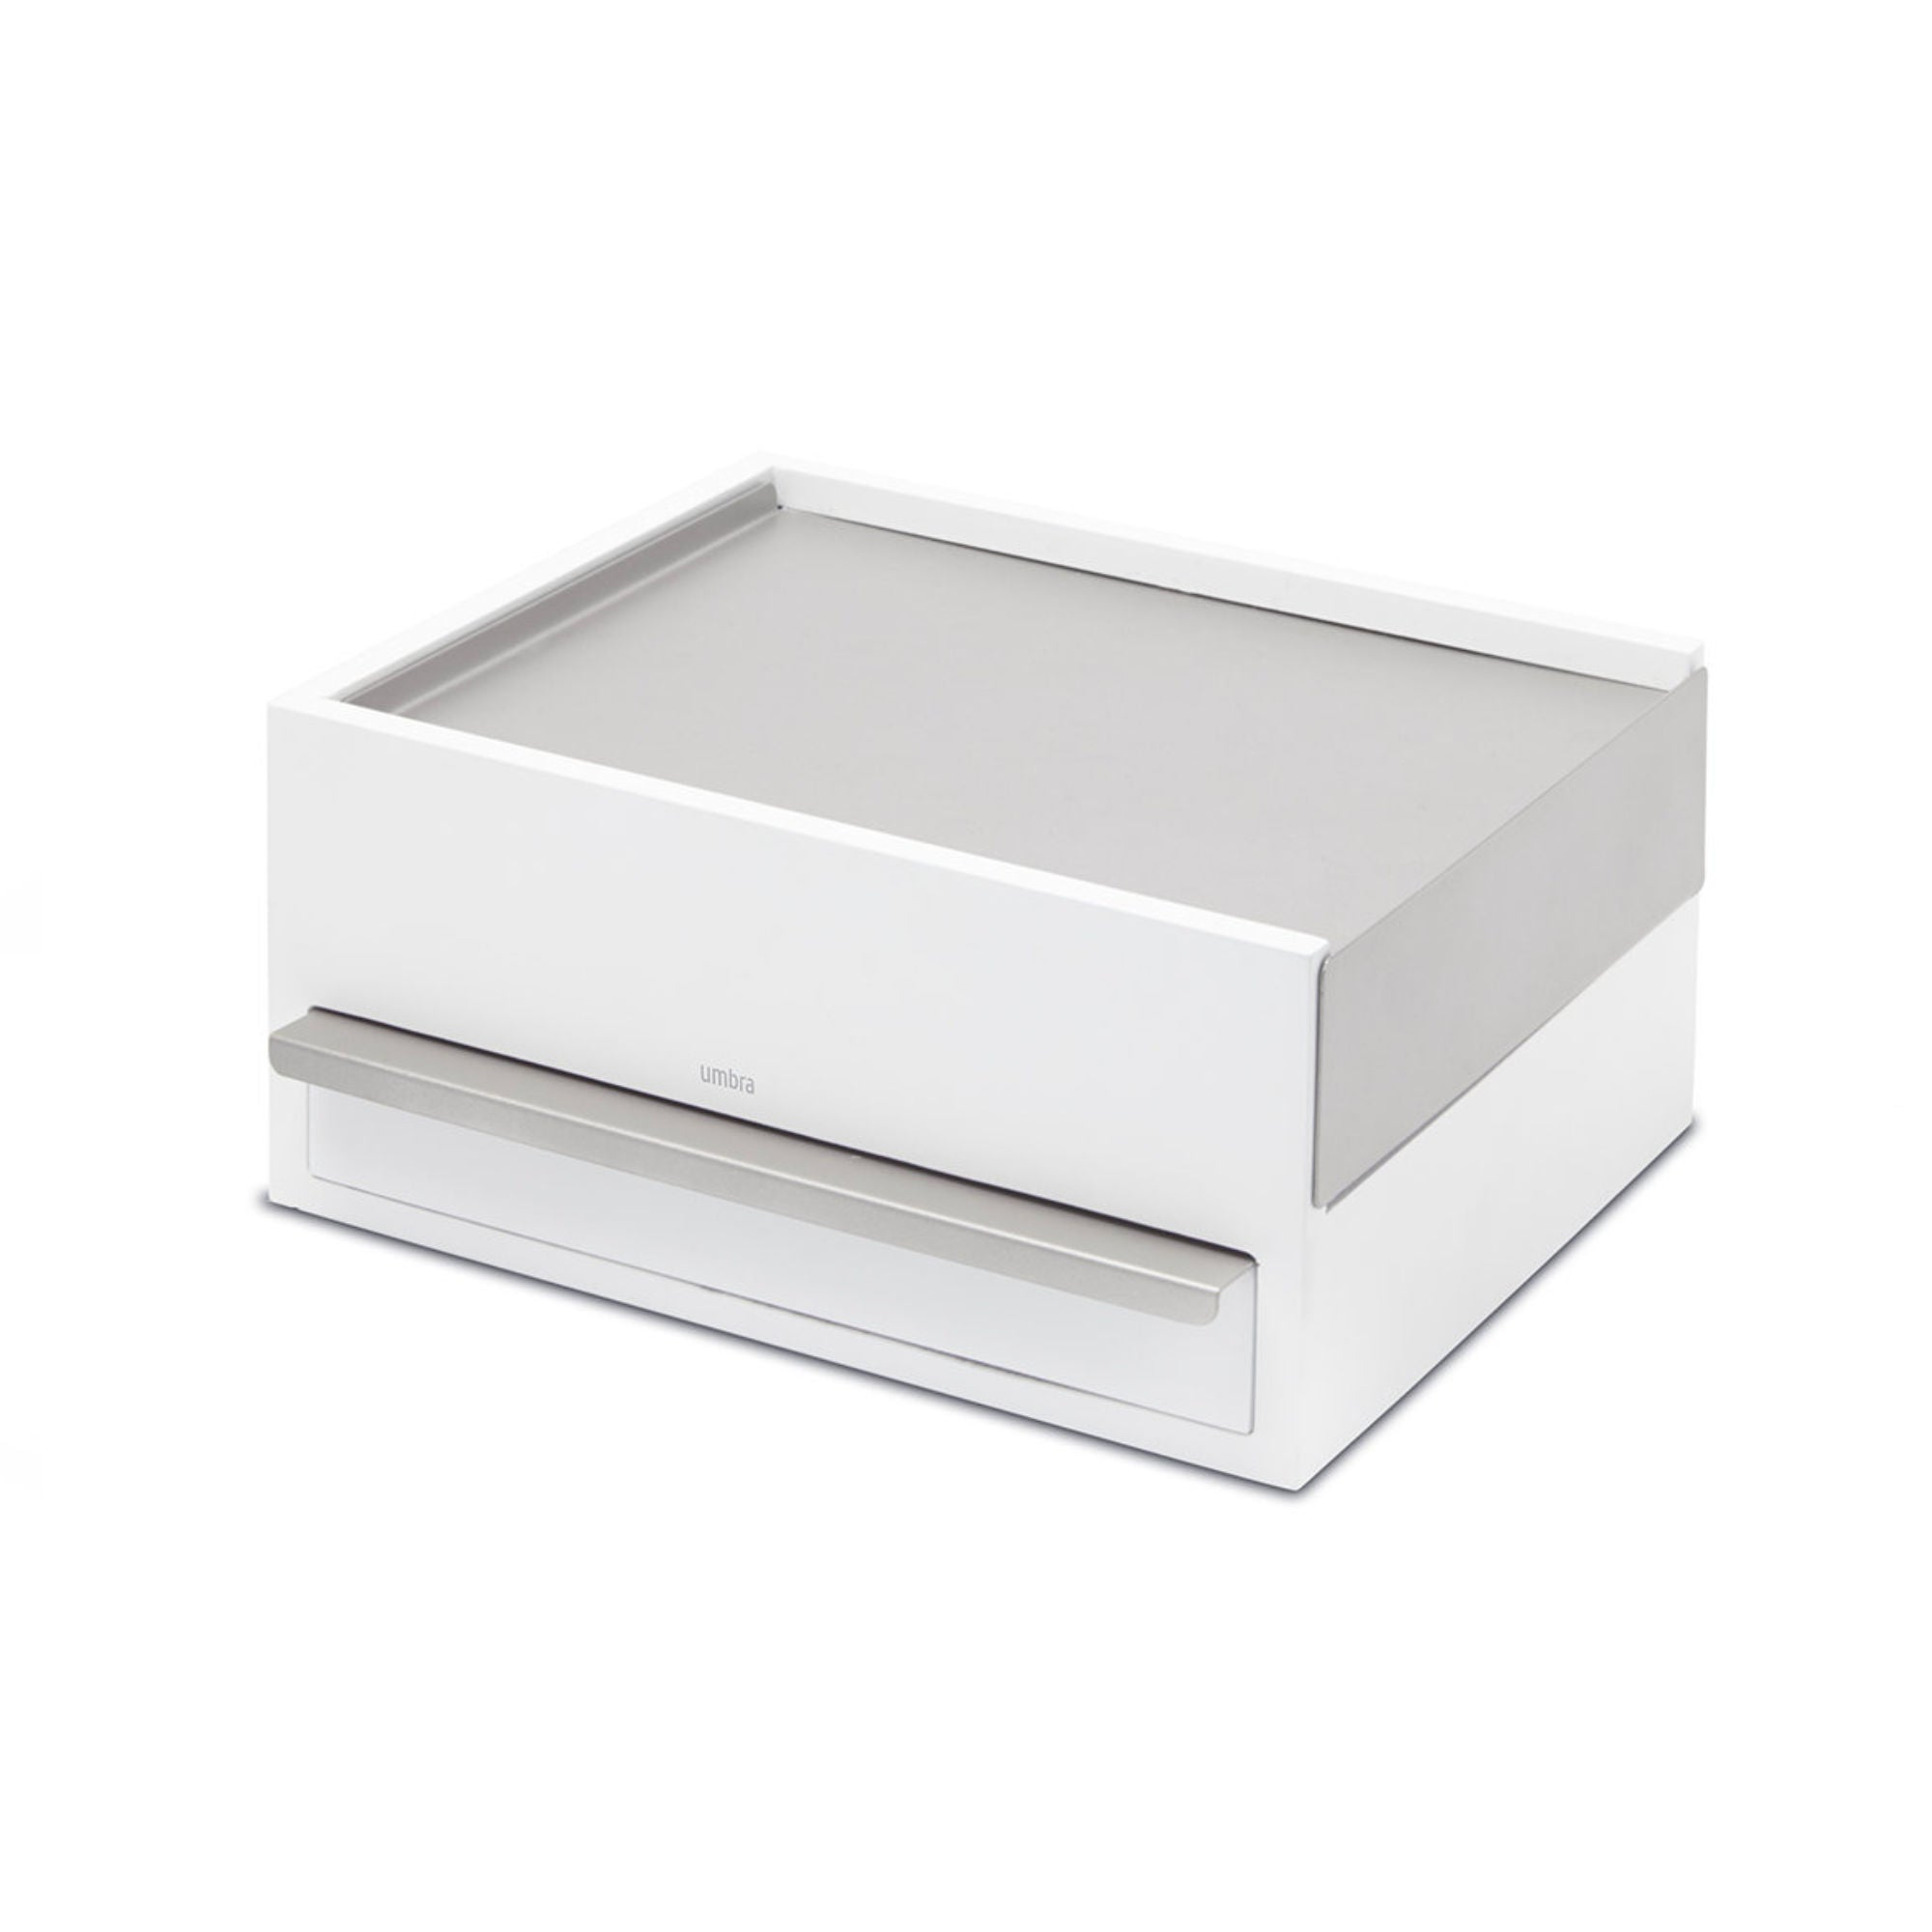 Stowit jewelry box white, large